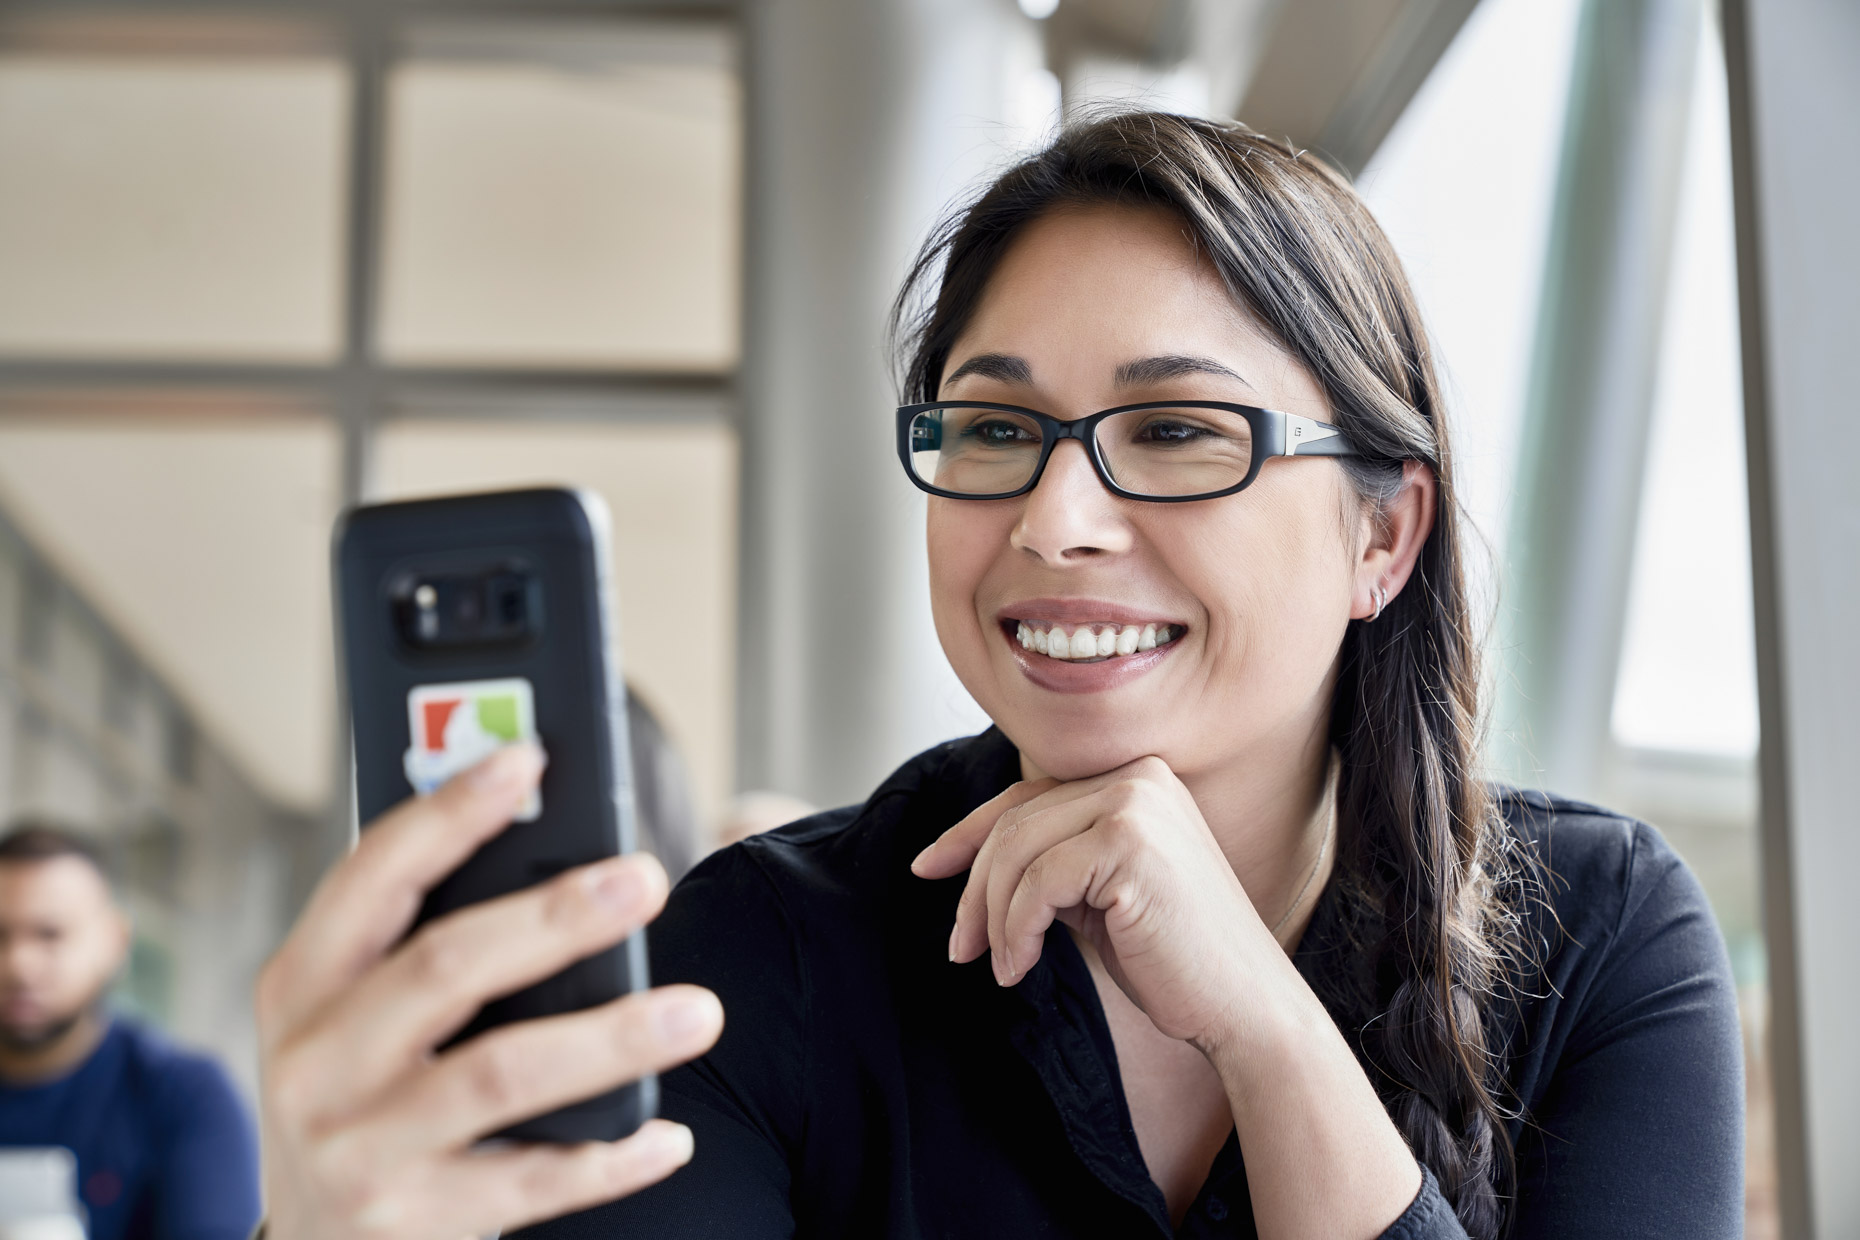 Woman in glasses smiling at cell phone